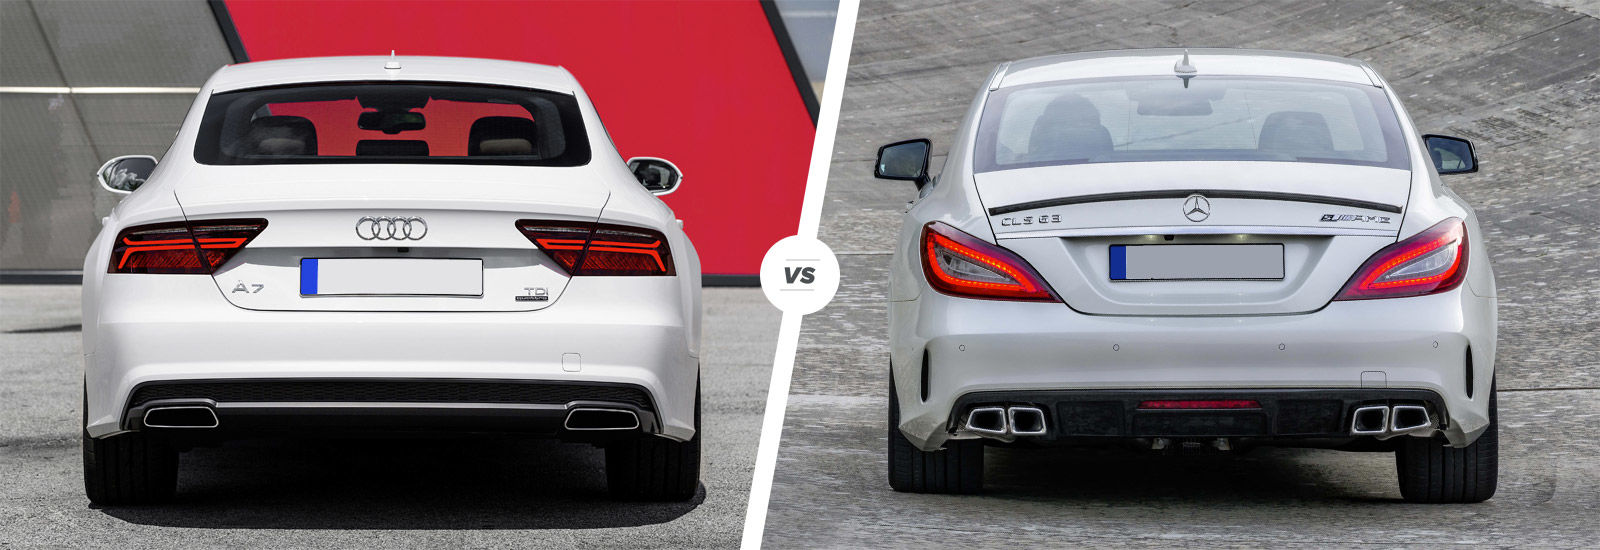 Audi A7 vs Mercedes CLS comparison | carwow